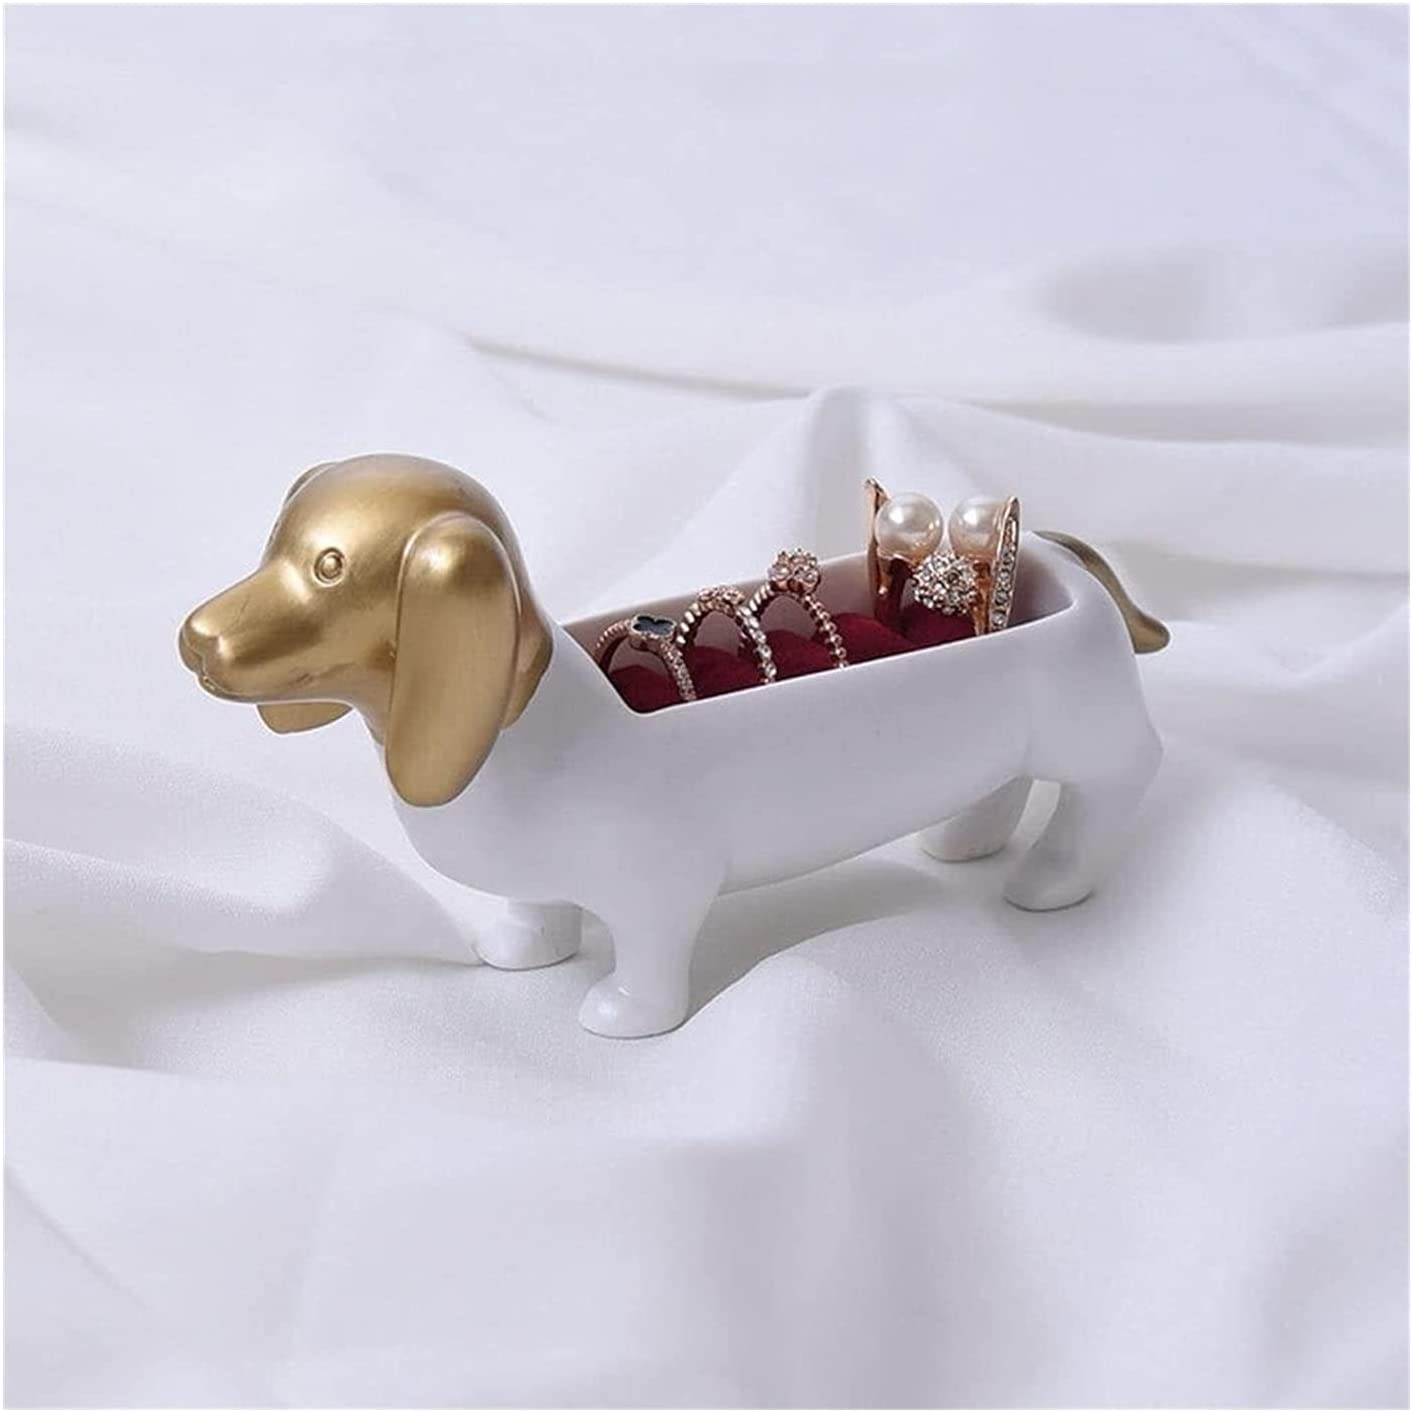 LQX Statue Special Campaign Resin Sculpture Dachshund 2021 new Jewelry Box Dog Art